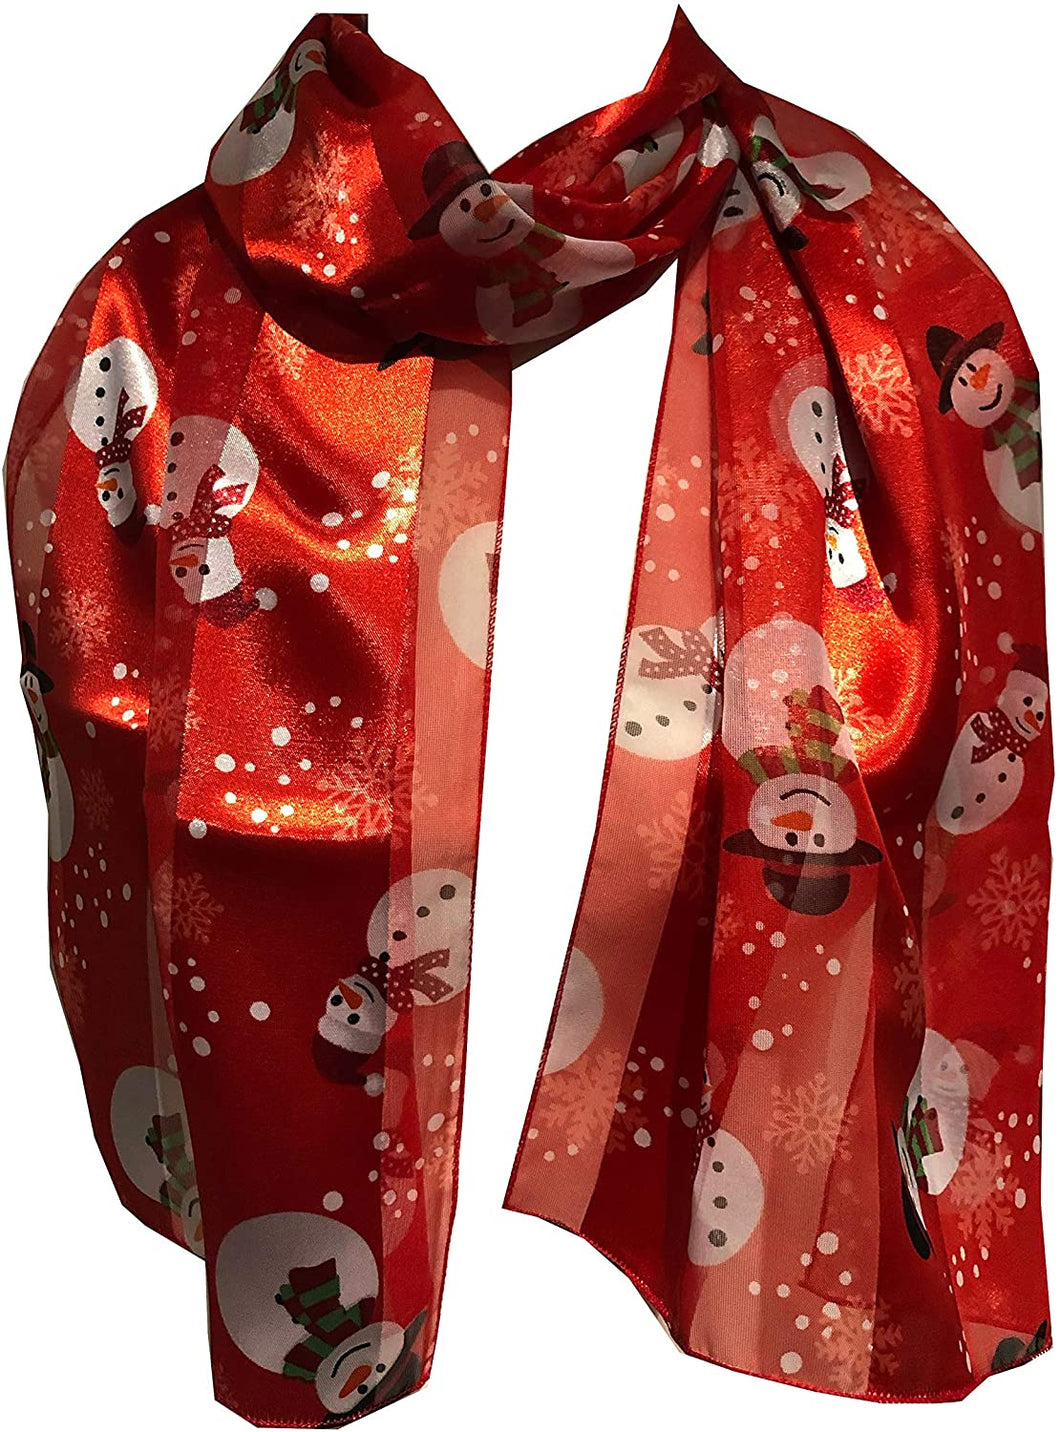 Pamper Yourself Now Snowman Design Scarf Thin Pretty Christmas Scarf, Great as a Present/Gift.